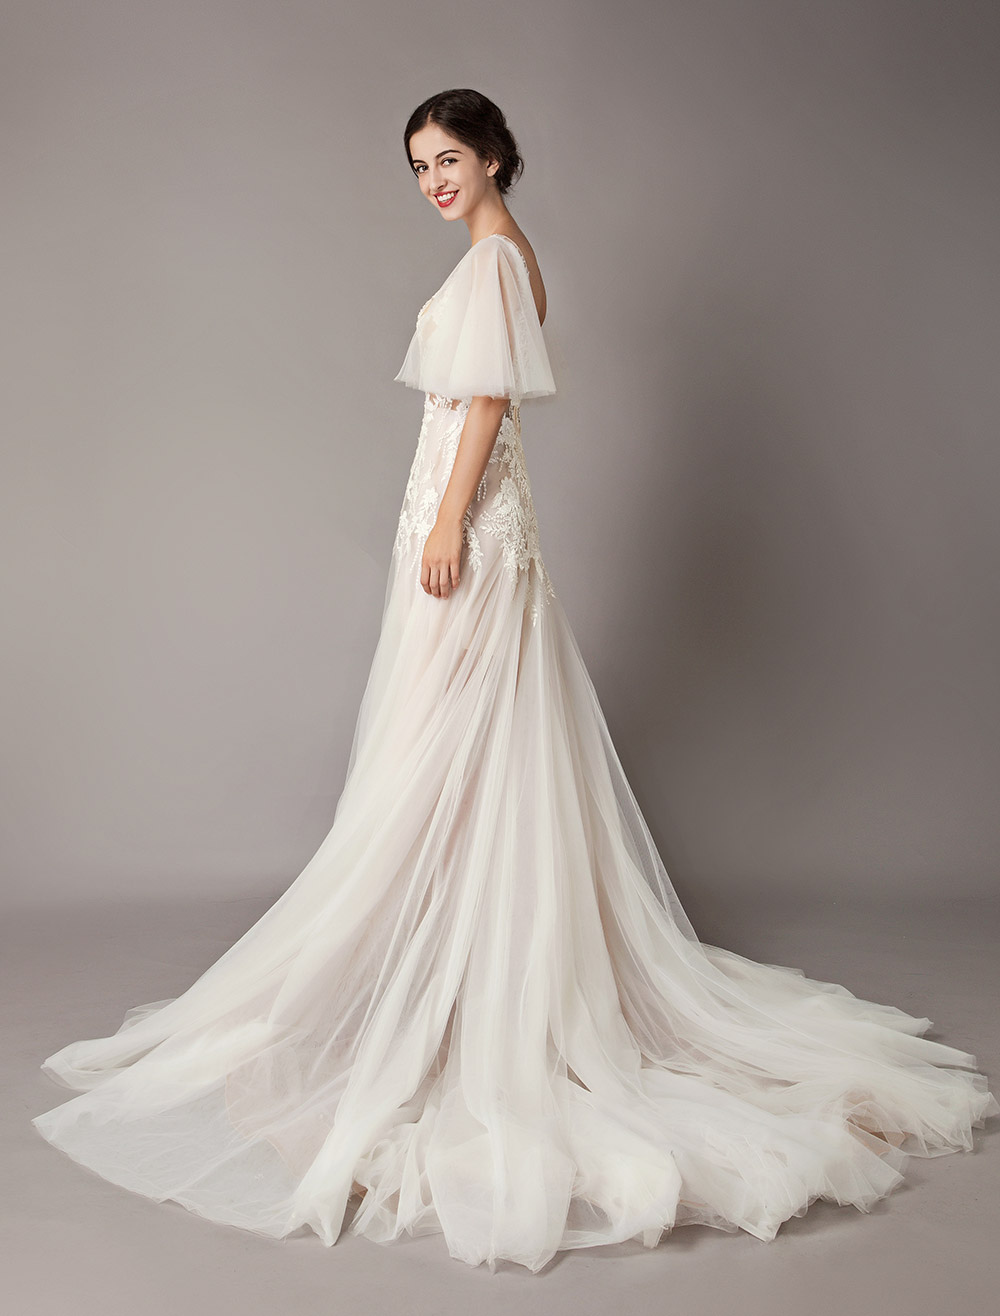 f4d0bc3a941 ... Boho Wedding Dresses Tulle Lace V Neck Butterfly Sleeve Backless Summer  Beach Bridal Gowns-No ...